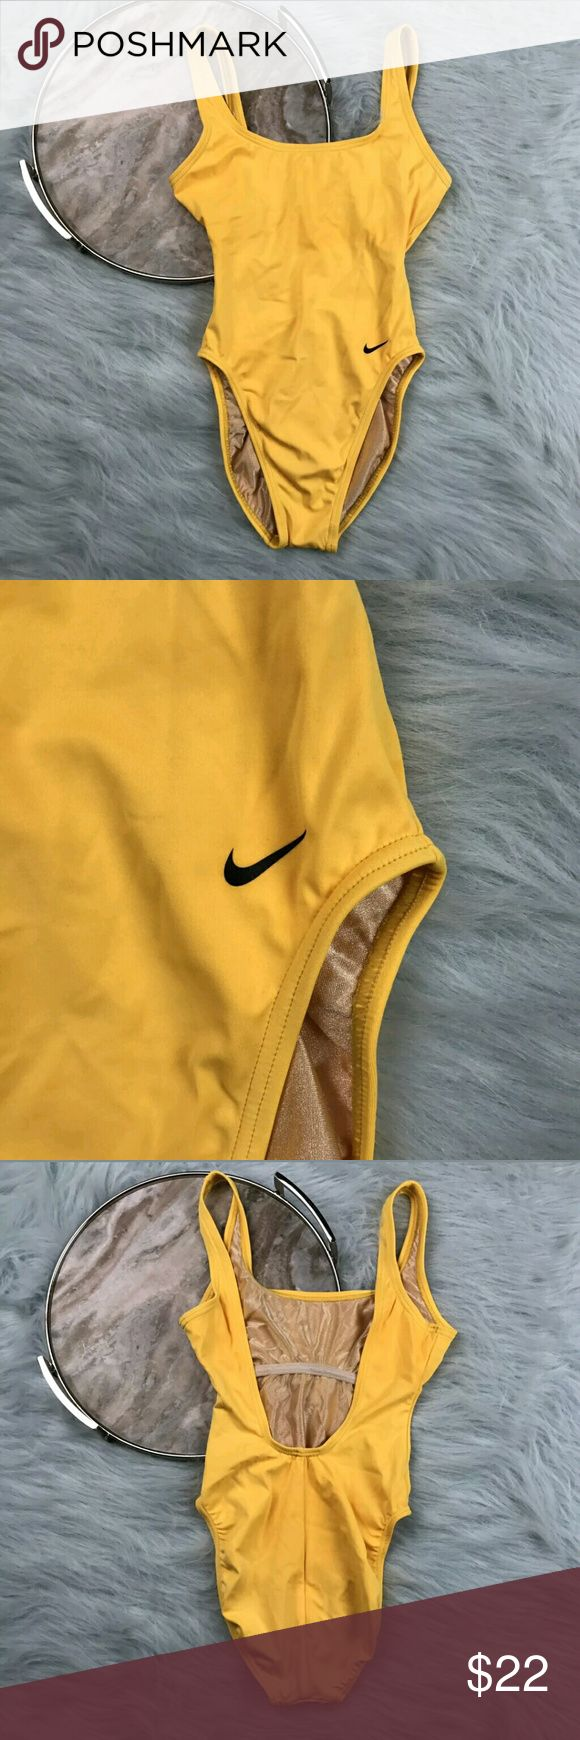 """Nike One Piece Swimsuit High Cut Vintage Nike yellow one piece high cut swimsuit. Womens size 8. Gently used, without flaws. See pictures for details.  Armpit to Armpit - 14"""" Length -  25""""  Inventory CLTDR Nike Swim One Pieces"""